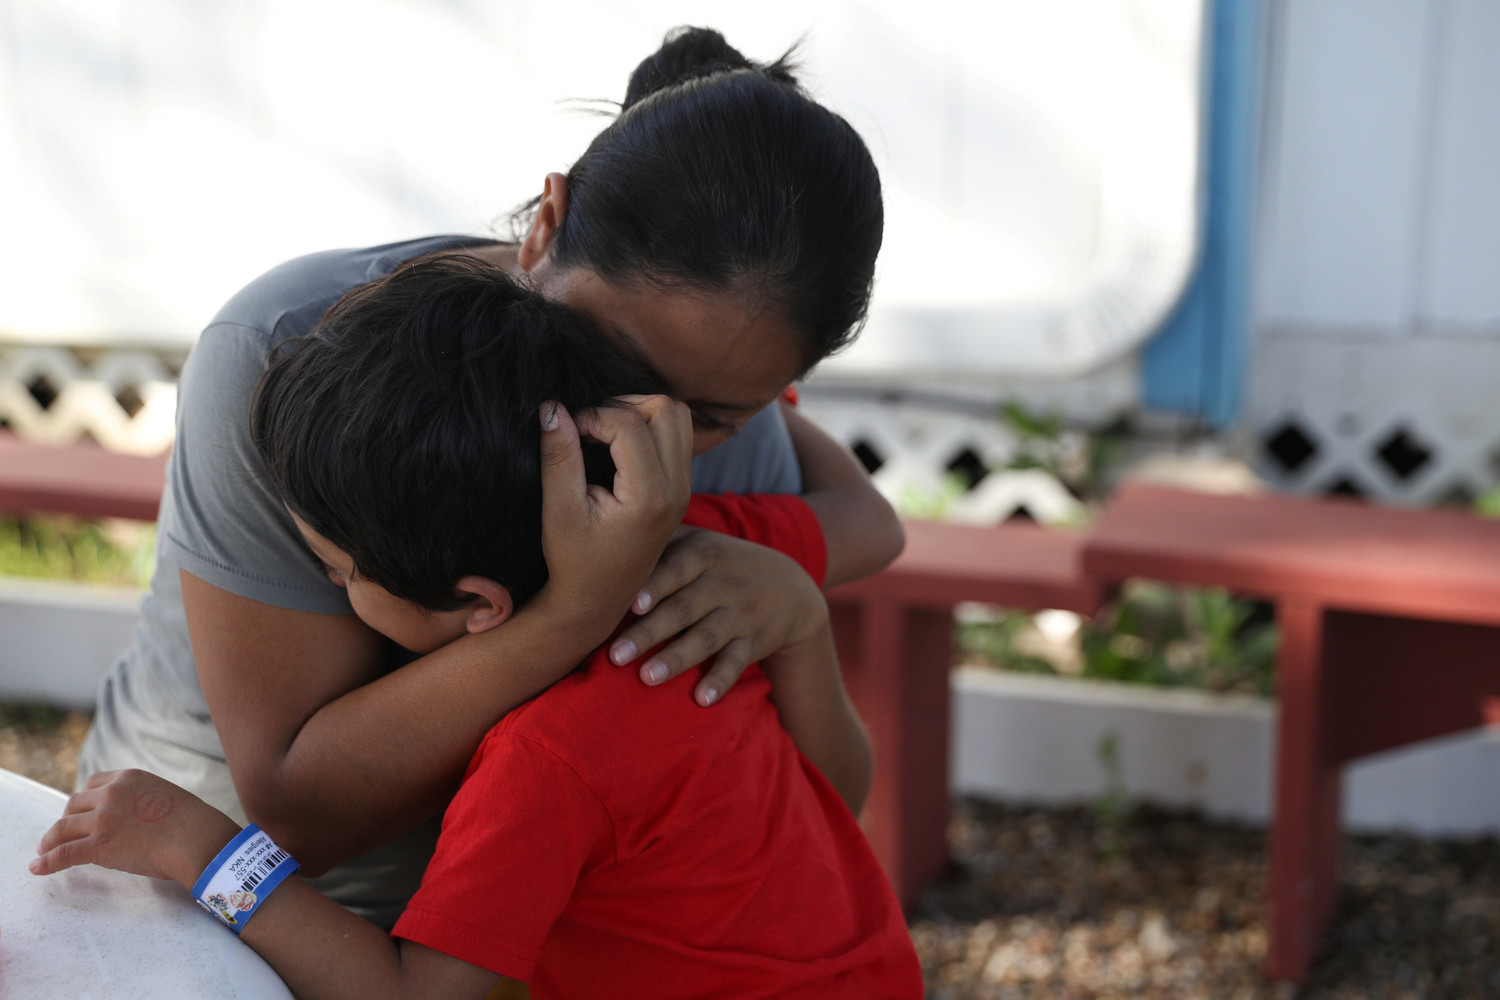 Anita Areli Ramirez Mejia, an asylum seeker from Honduras, hugs her 6-year-old son, Jenri, July 13 at La Posada Providencia shelter in San Benito, Texas. The mother and son were reunited after being separated near the Mexico-U.S. border.